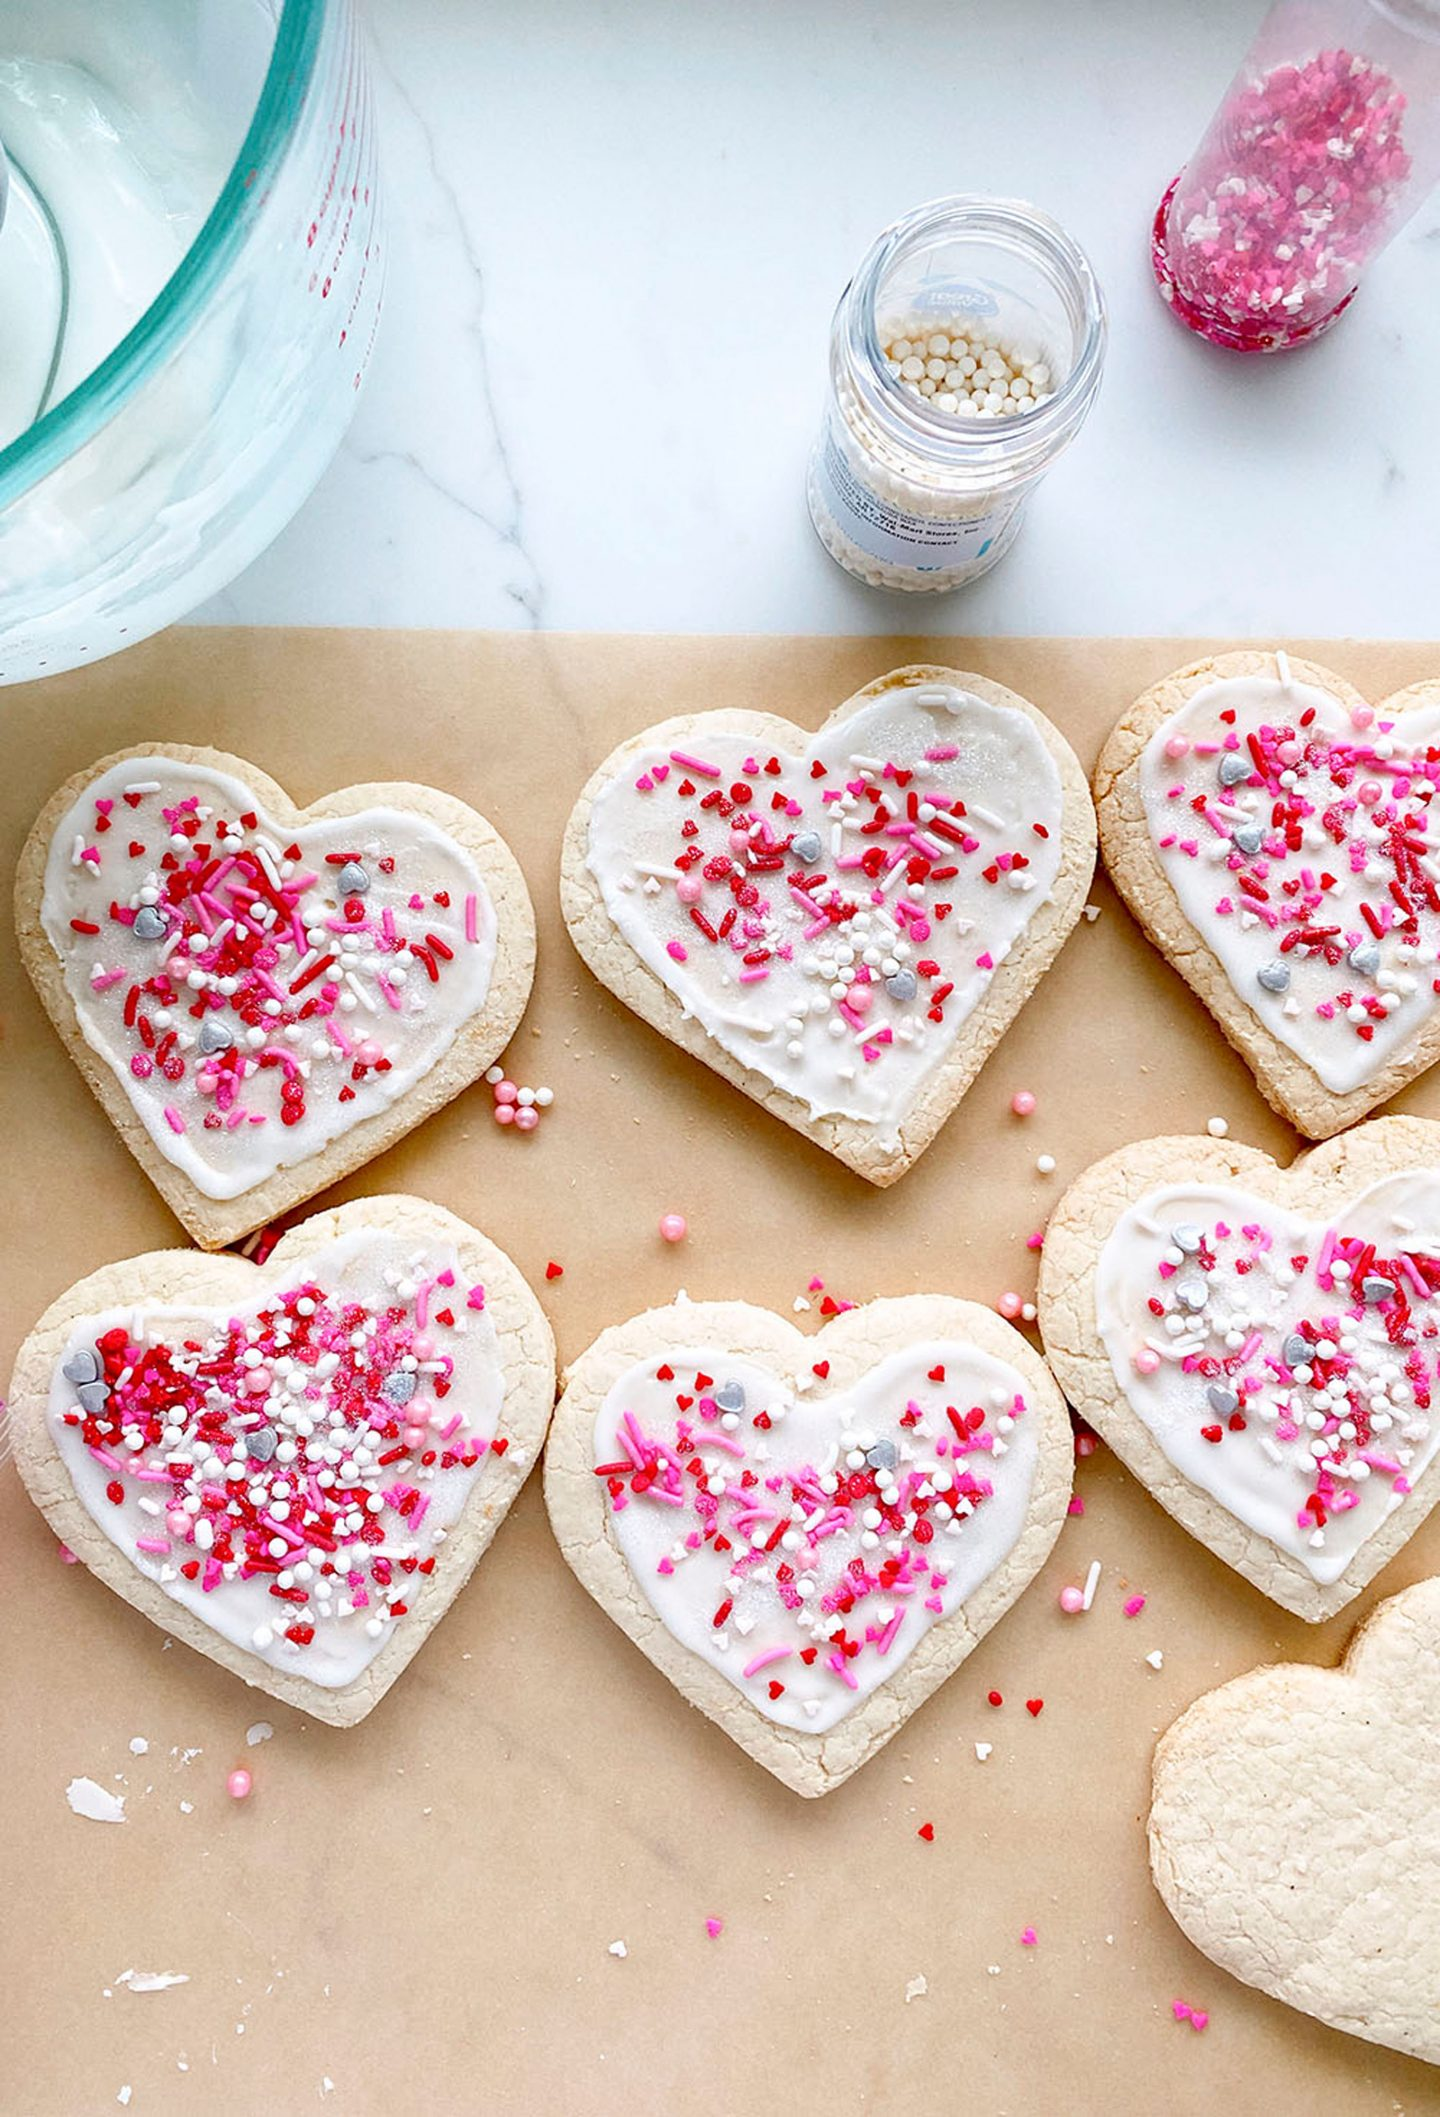 Heart shaped sugar cookies for Valentine's Day